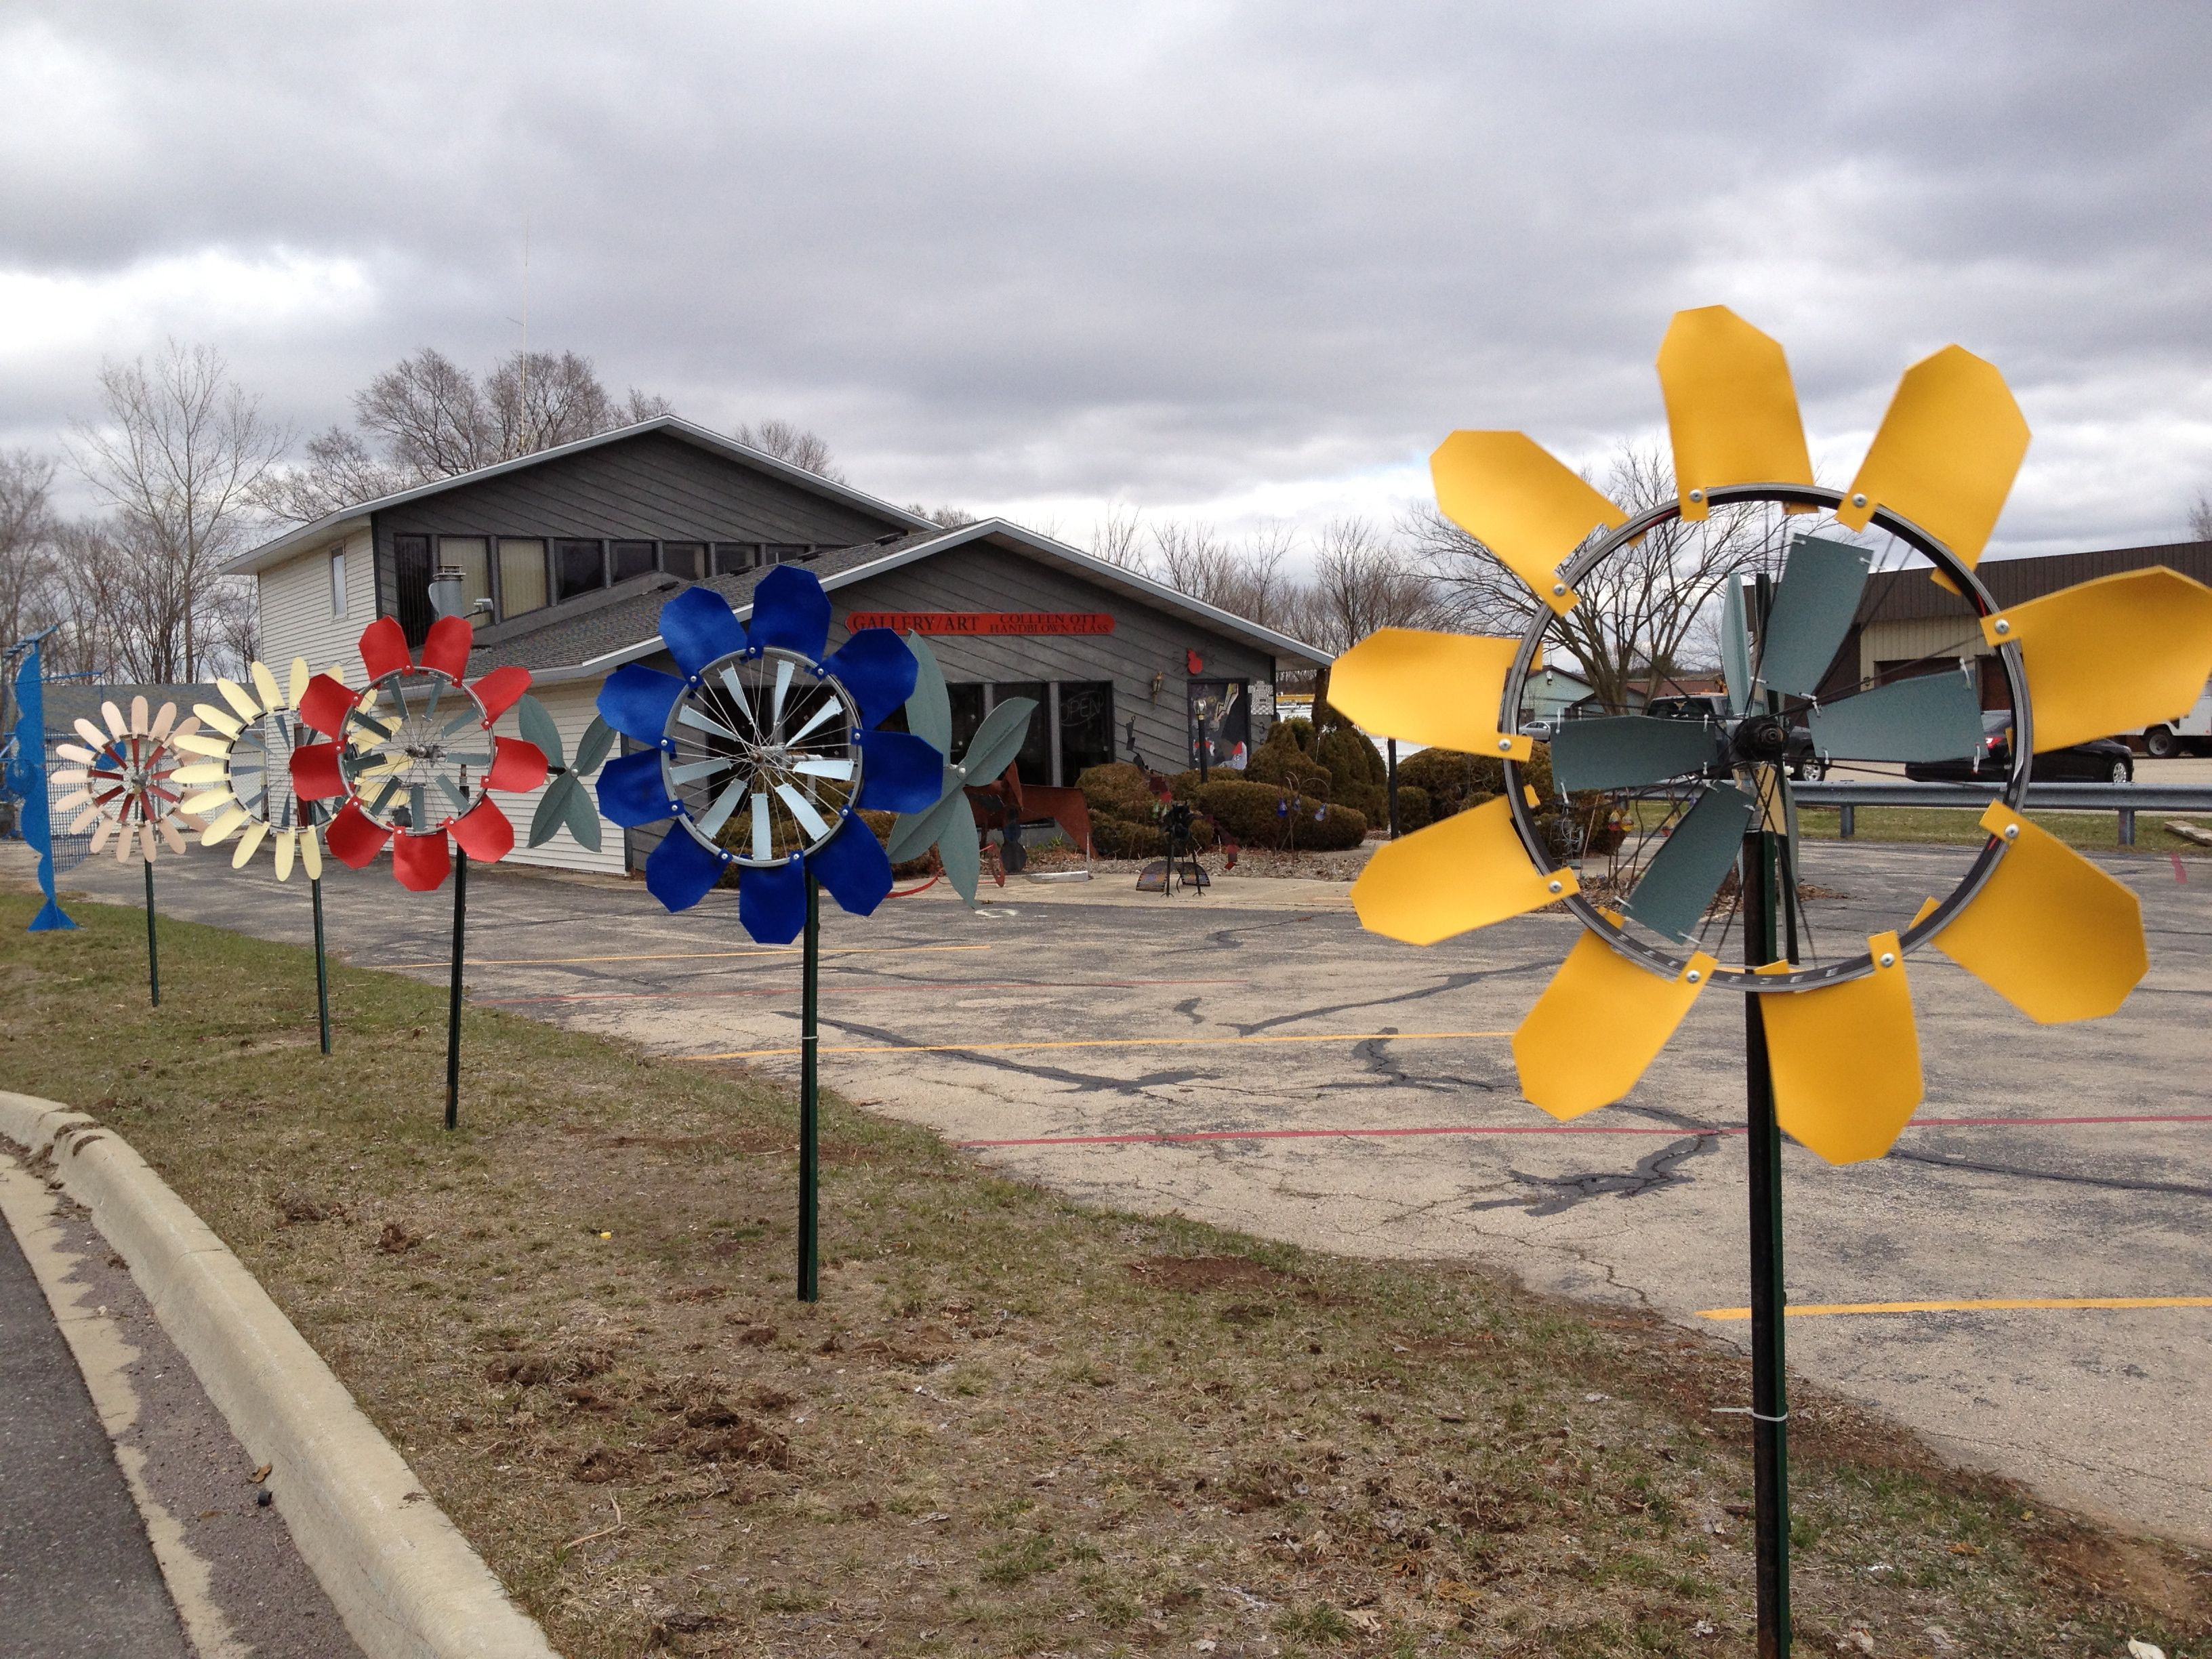 Windflower Kinetic Garden Sculptures Made From Recycled Bicycle Rims,  Plumbing Parts, PVC Foam Sheets